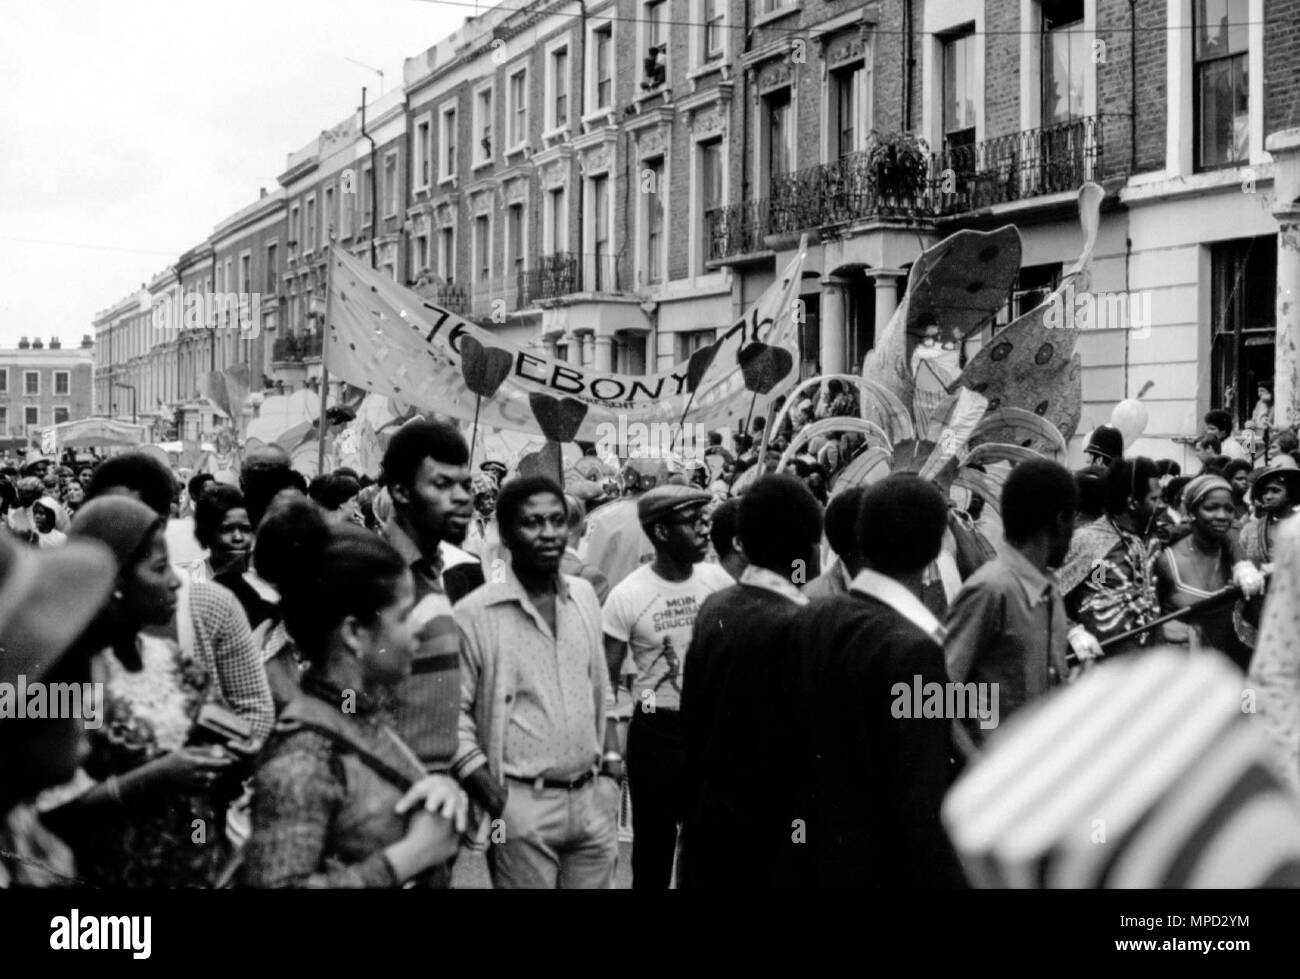 The Notting Hill Carnival in the streets of West London in 1976, the largest street festival in Europe. Great history of the Carnival images. - Stock Image